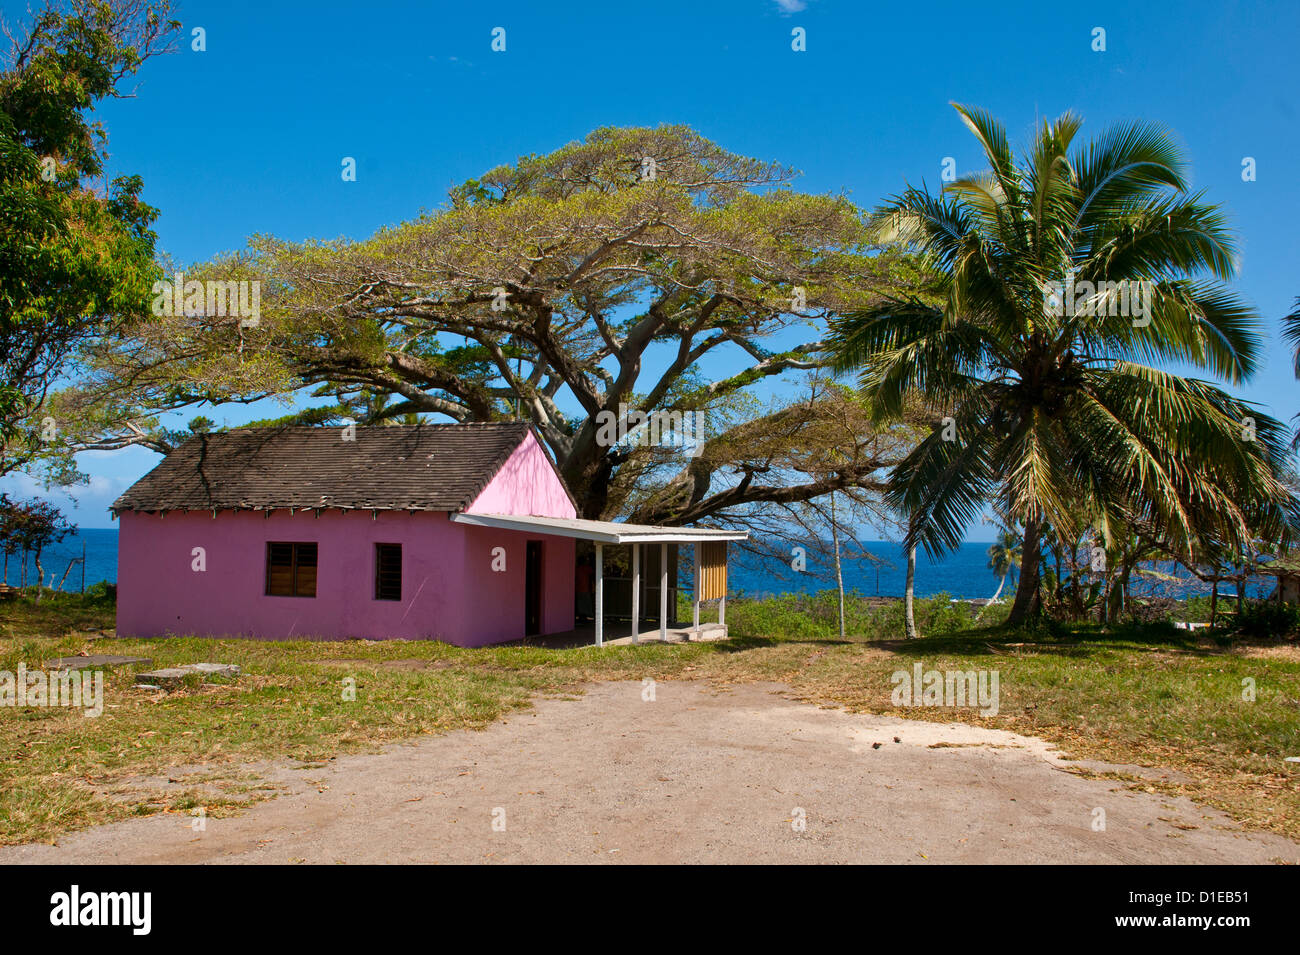 Pink town house in Lenakel capital of the Island of Tanna, Vanuatu, South Pacific, Pacific - Stock Image